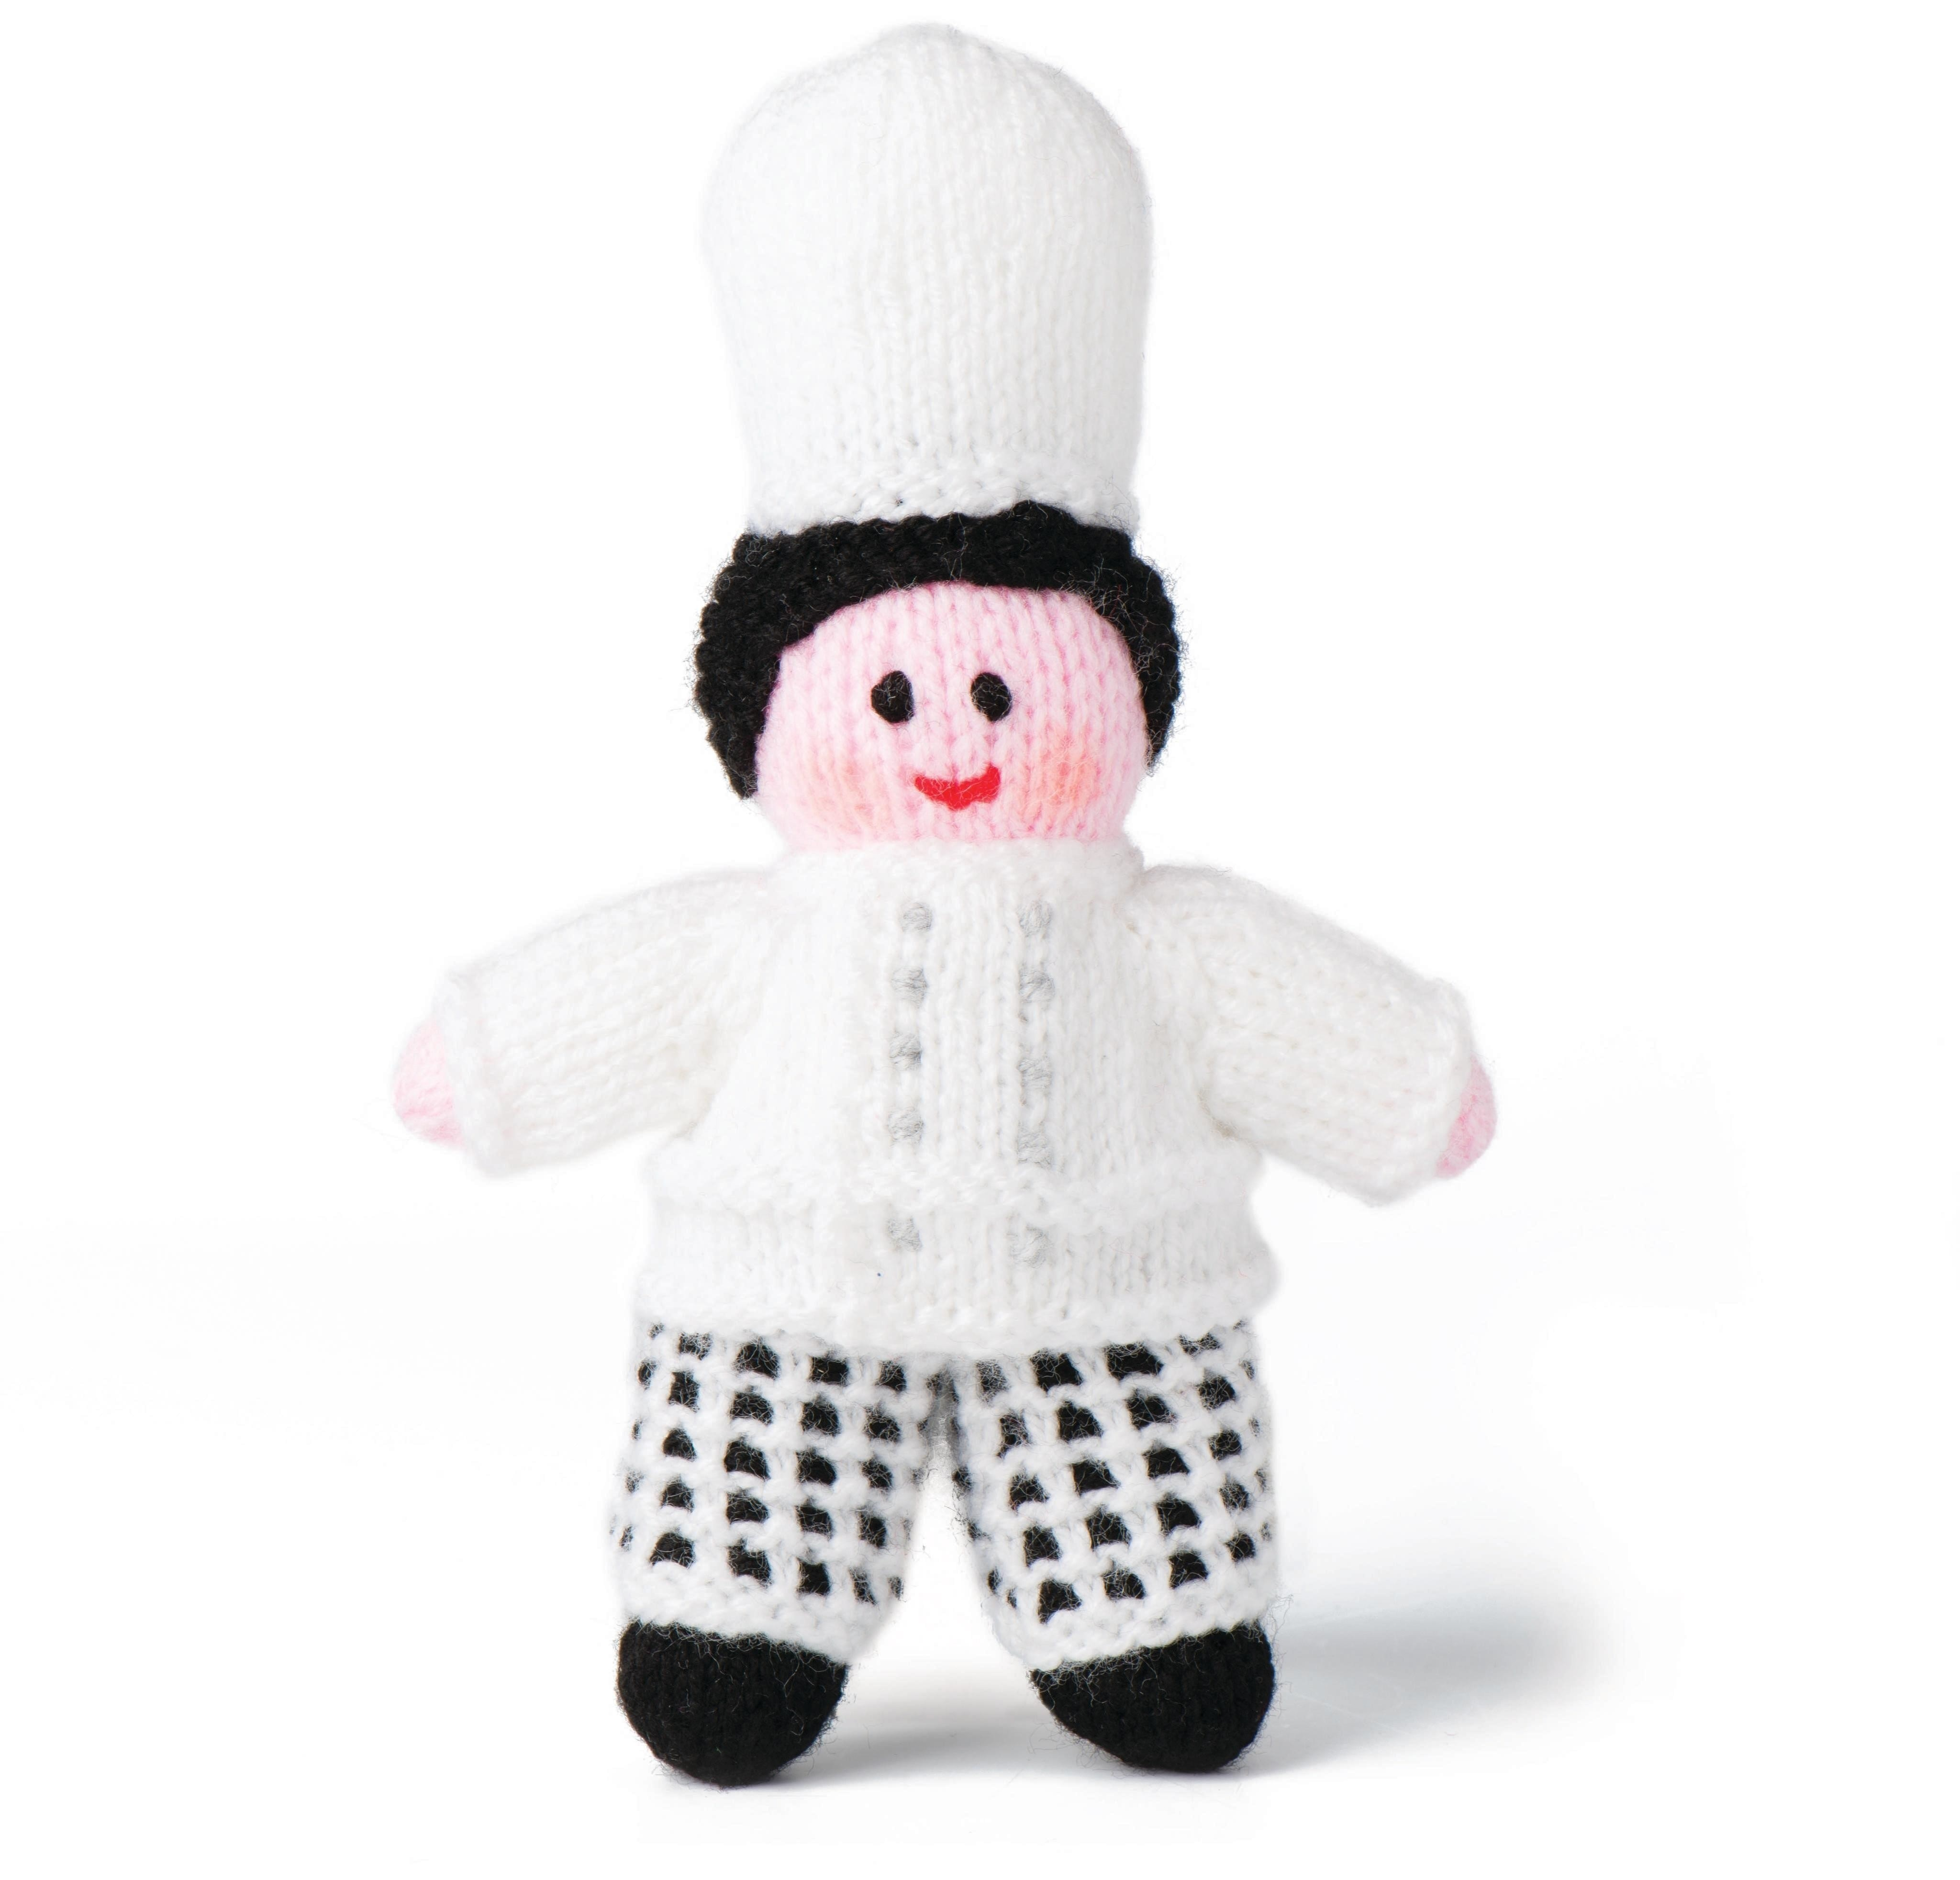 Chef · Extract from 50 Knitted Dolls by Sarah Keen · How To Make A ...